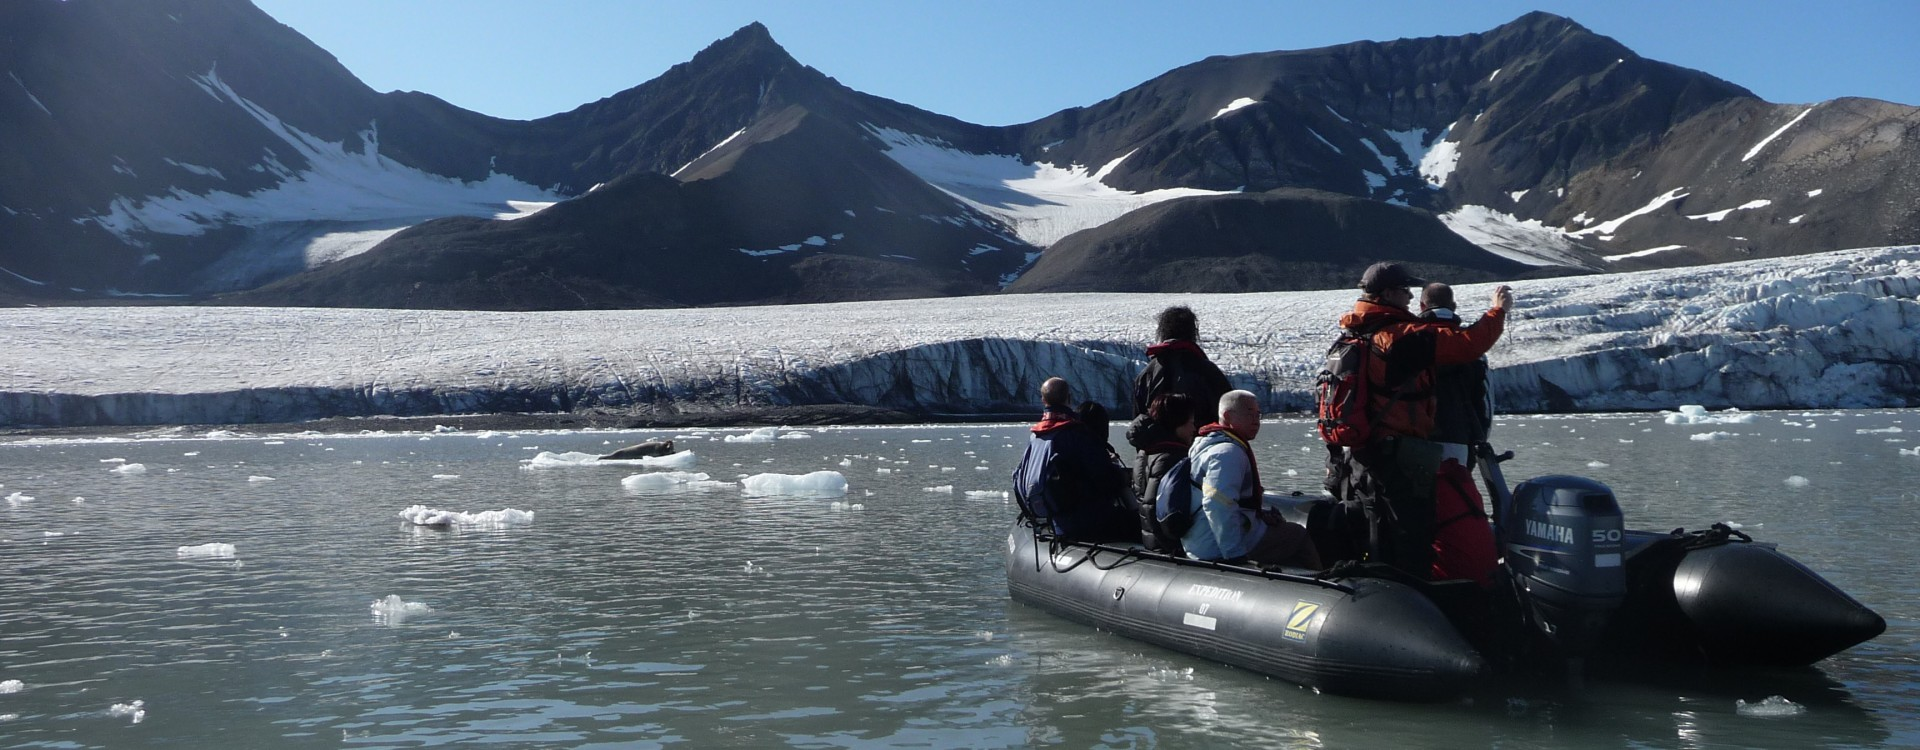 Zodiac Excursion in the Arctic